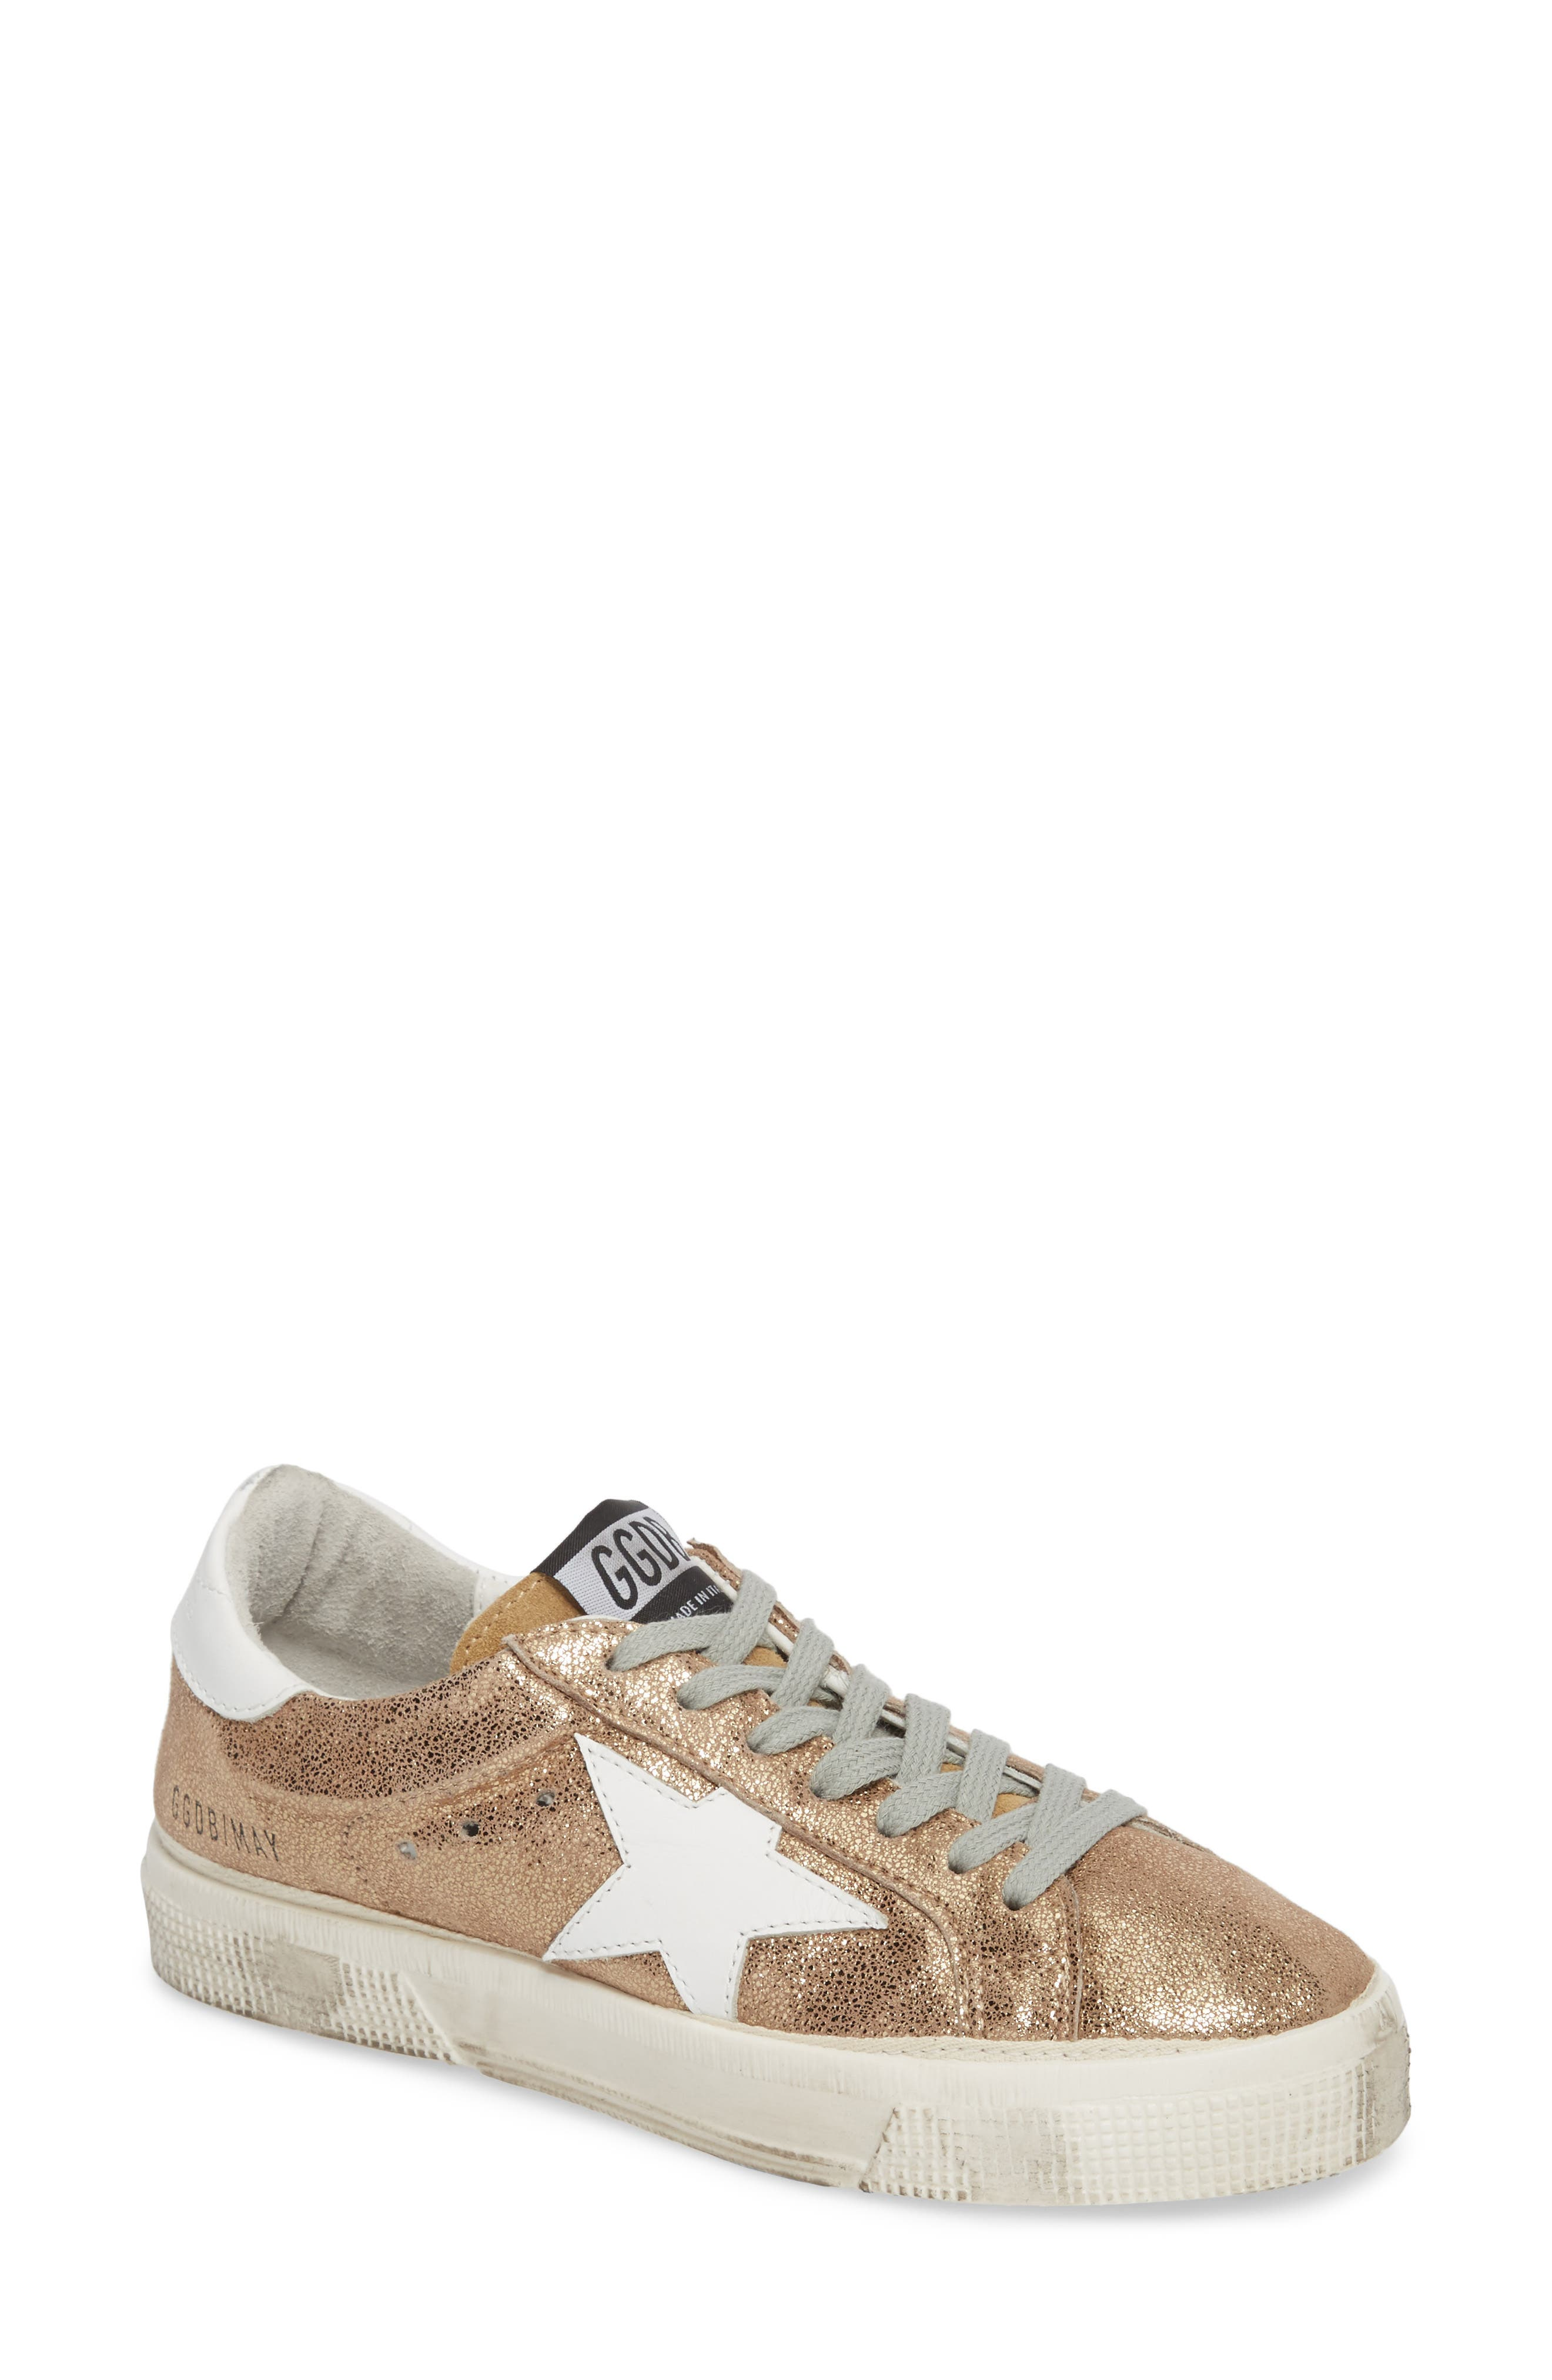 May Metallic Low Top Sneaker,                         Main,                         color, Gold/ White